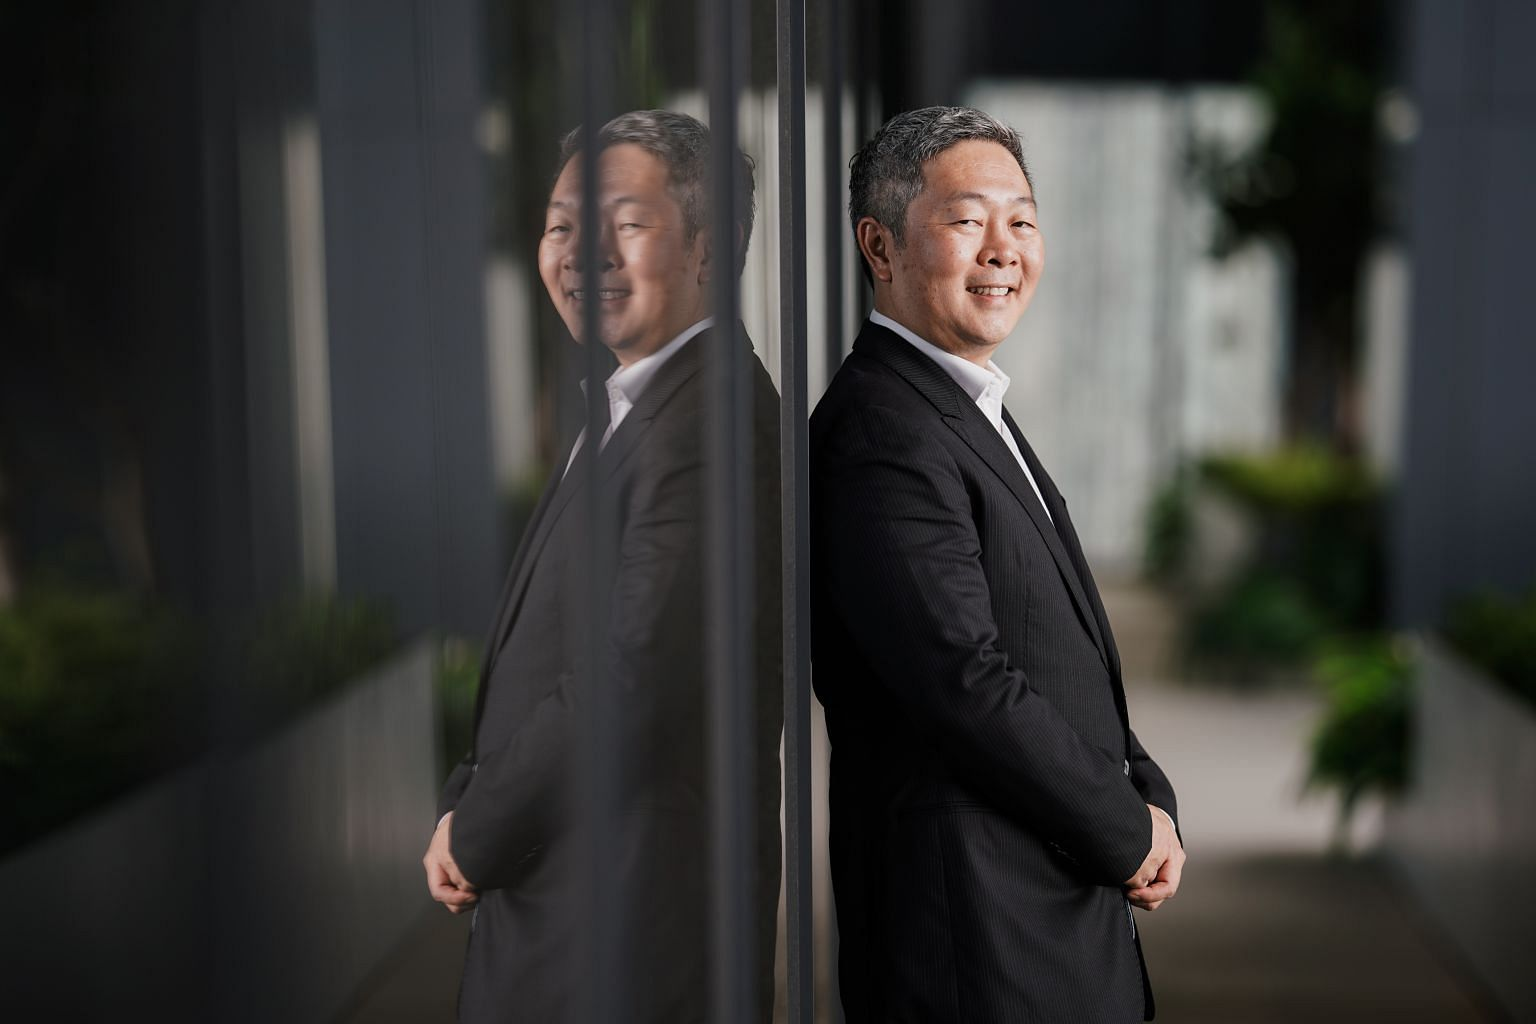 Crossbridge Capital Asia CEO Yai Sukonthabhund's personal portfolio consists of real estate, fixed income and equities. The biggest part of his liquid assets is invested through managed portfolios that are allocated in fixed income while retaining some ex